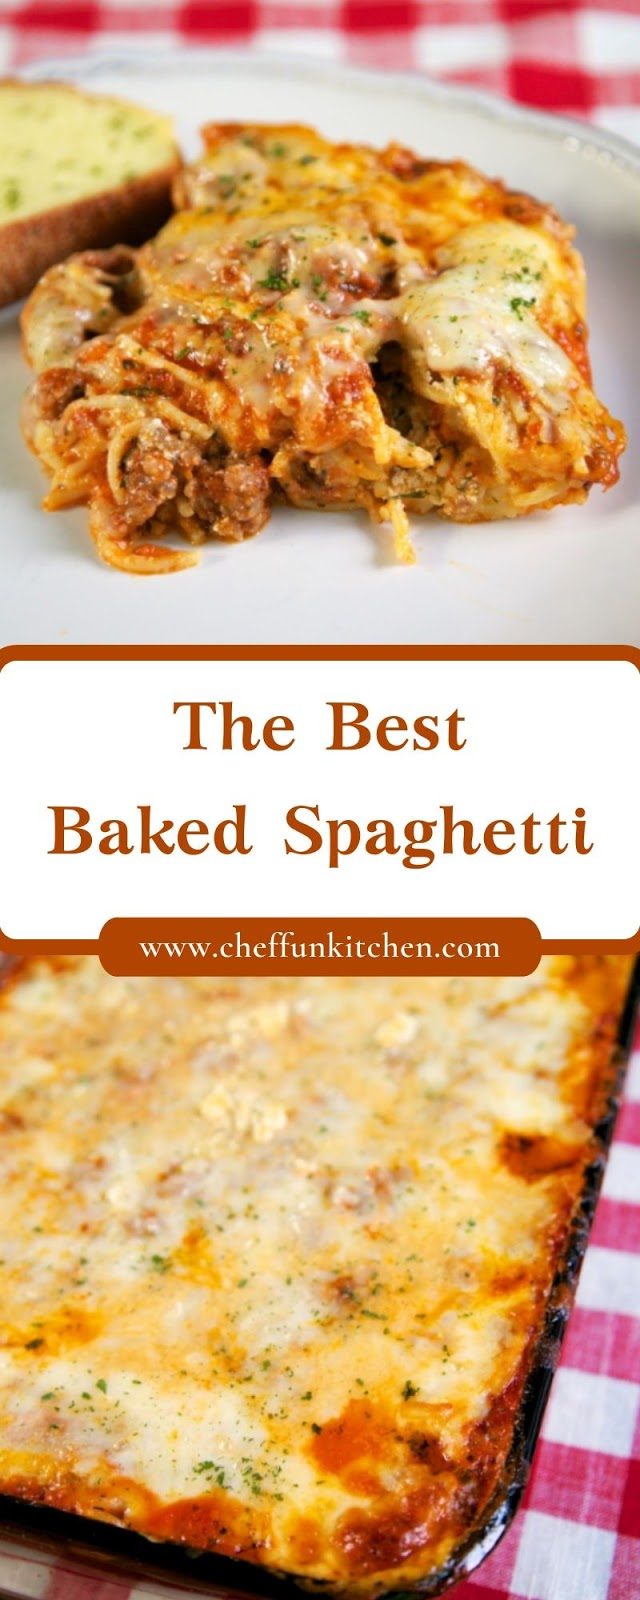 The Best Baked Spaghetti